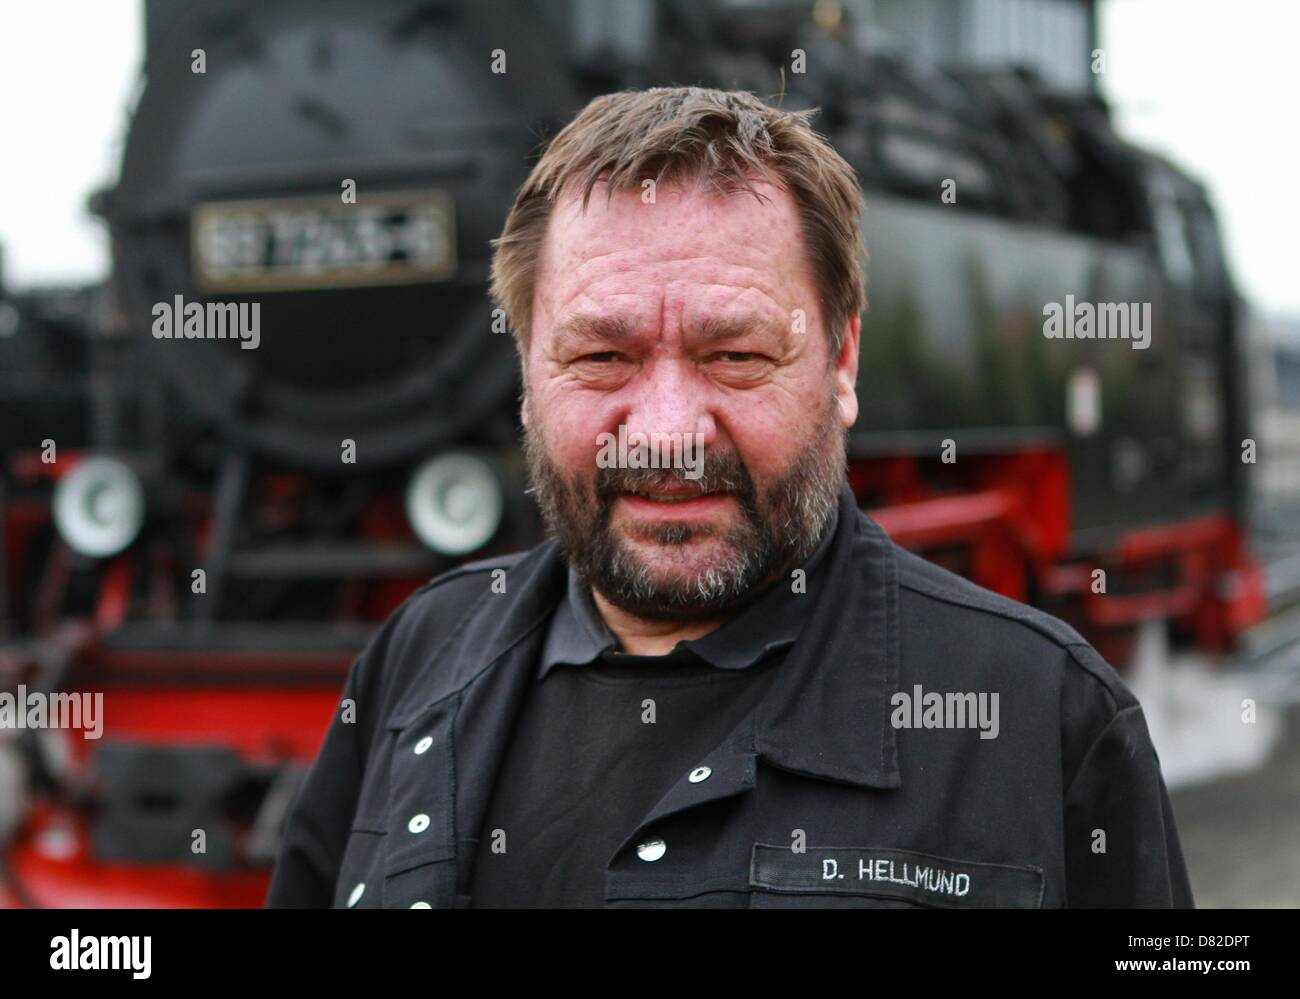 Engineer Dieter Hellmund sits in the driver's seat in steam locomotive from the Harz Narrow Gauge Railway (HSB) - Stock Image